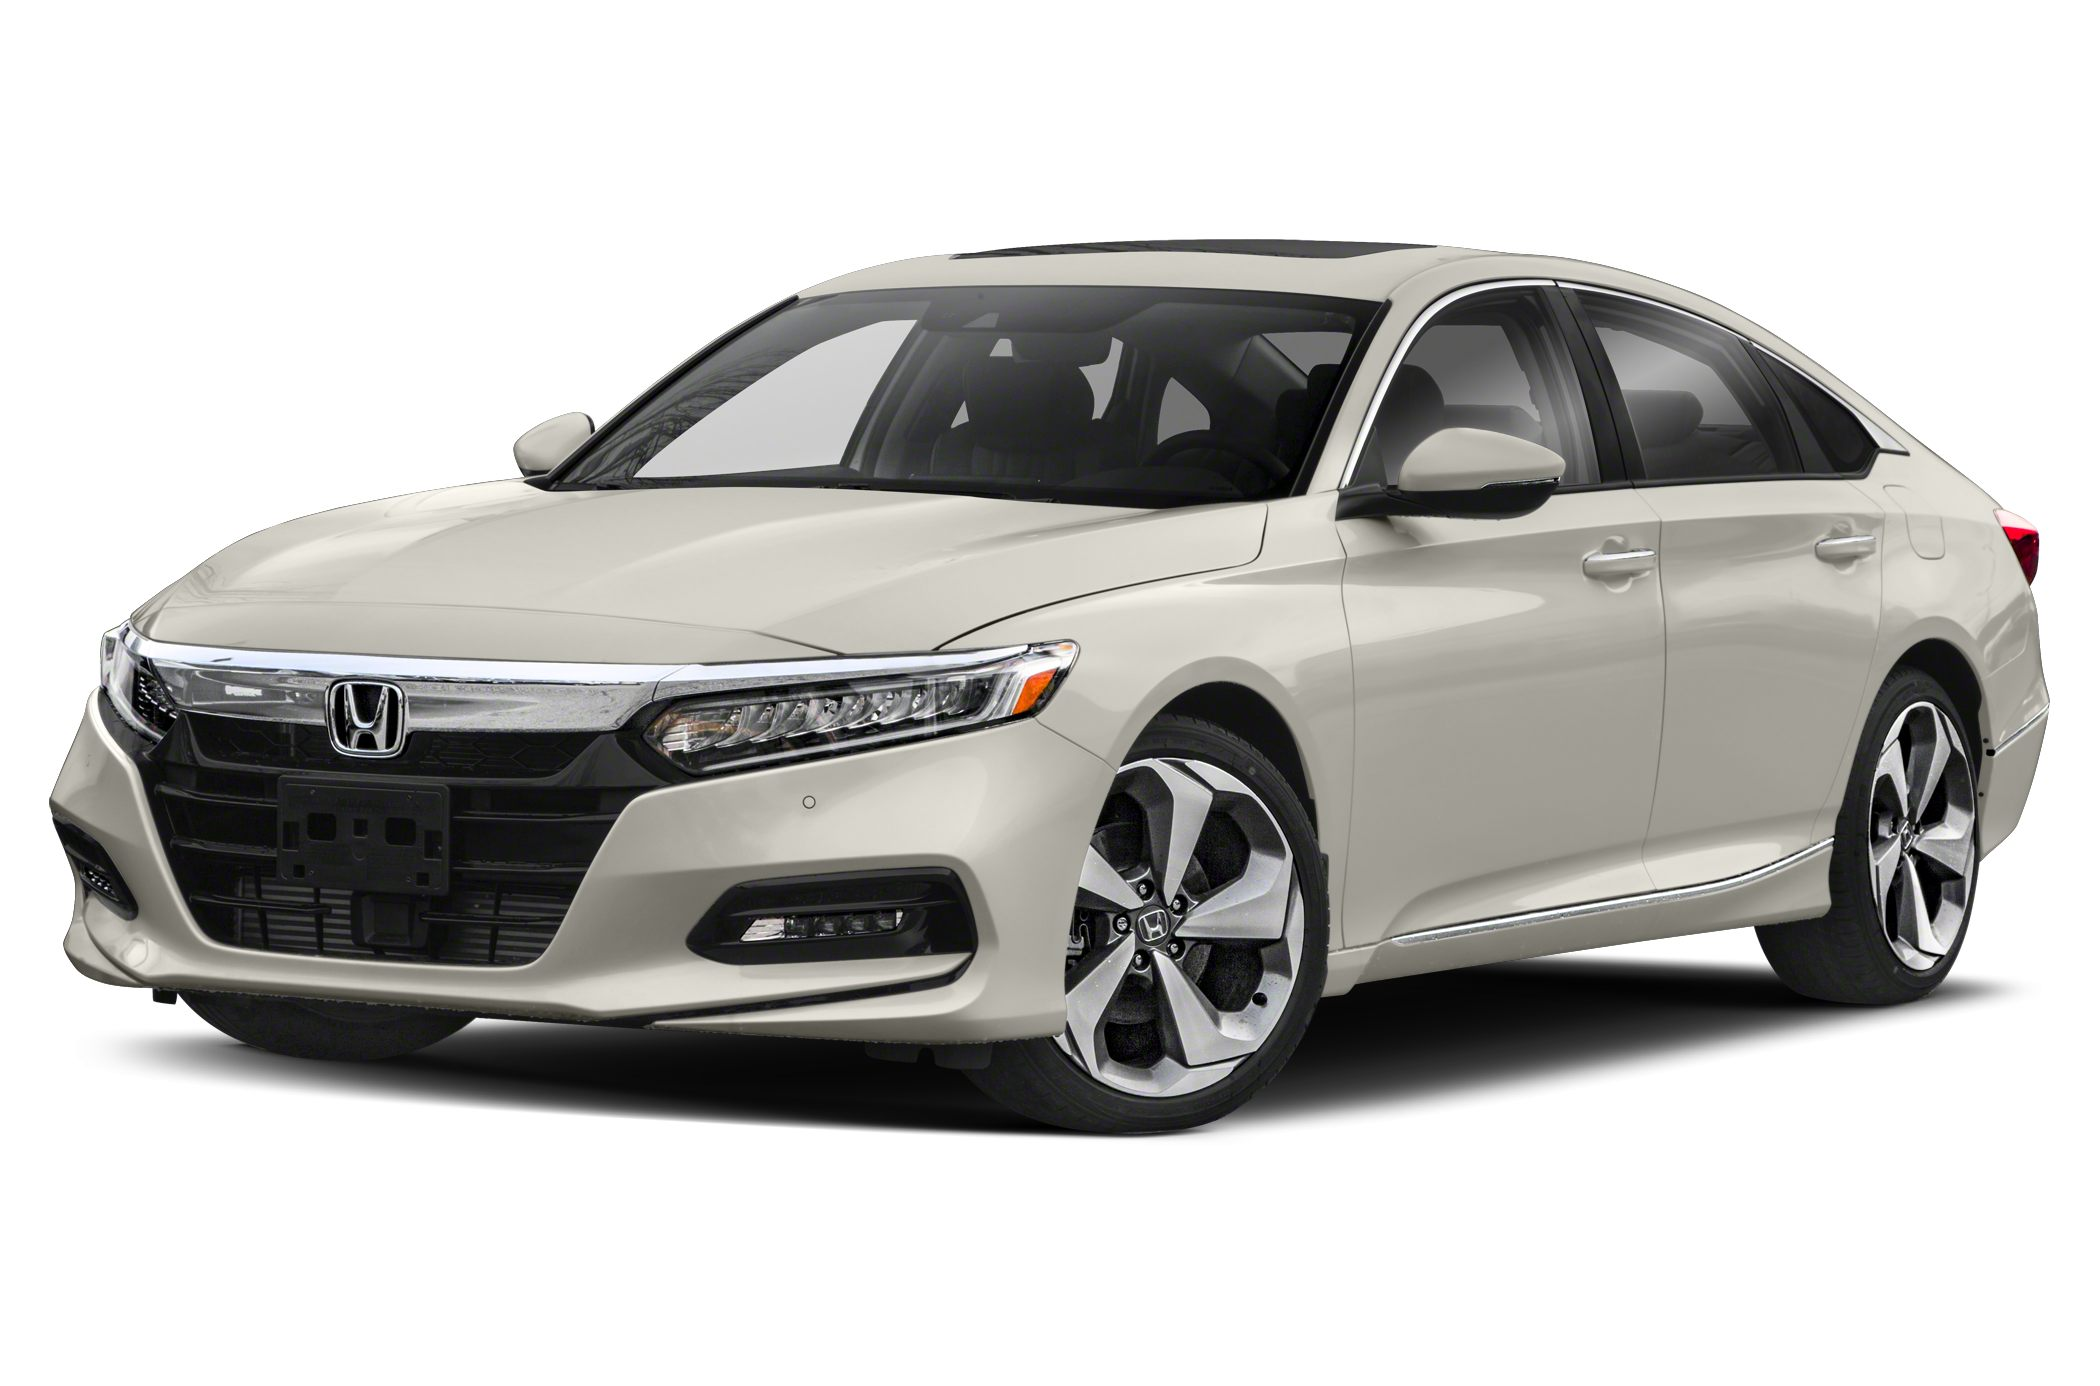 2020 Honda Accord Touring 2 0t 4dr Sedan Pricing And Options